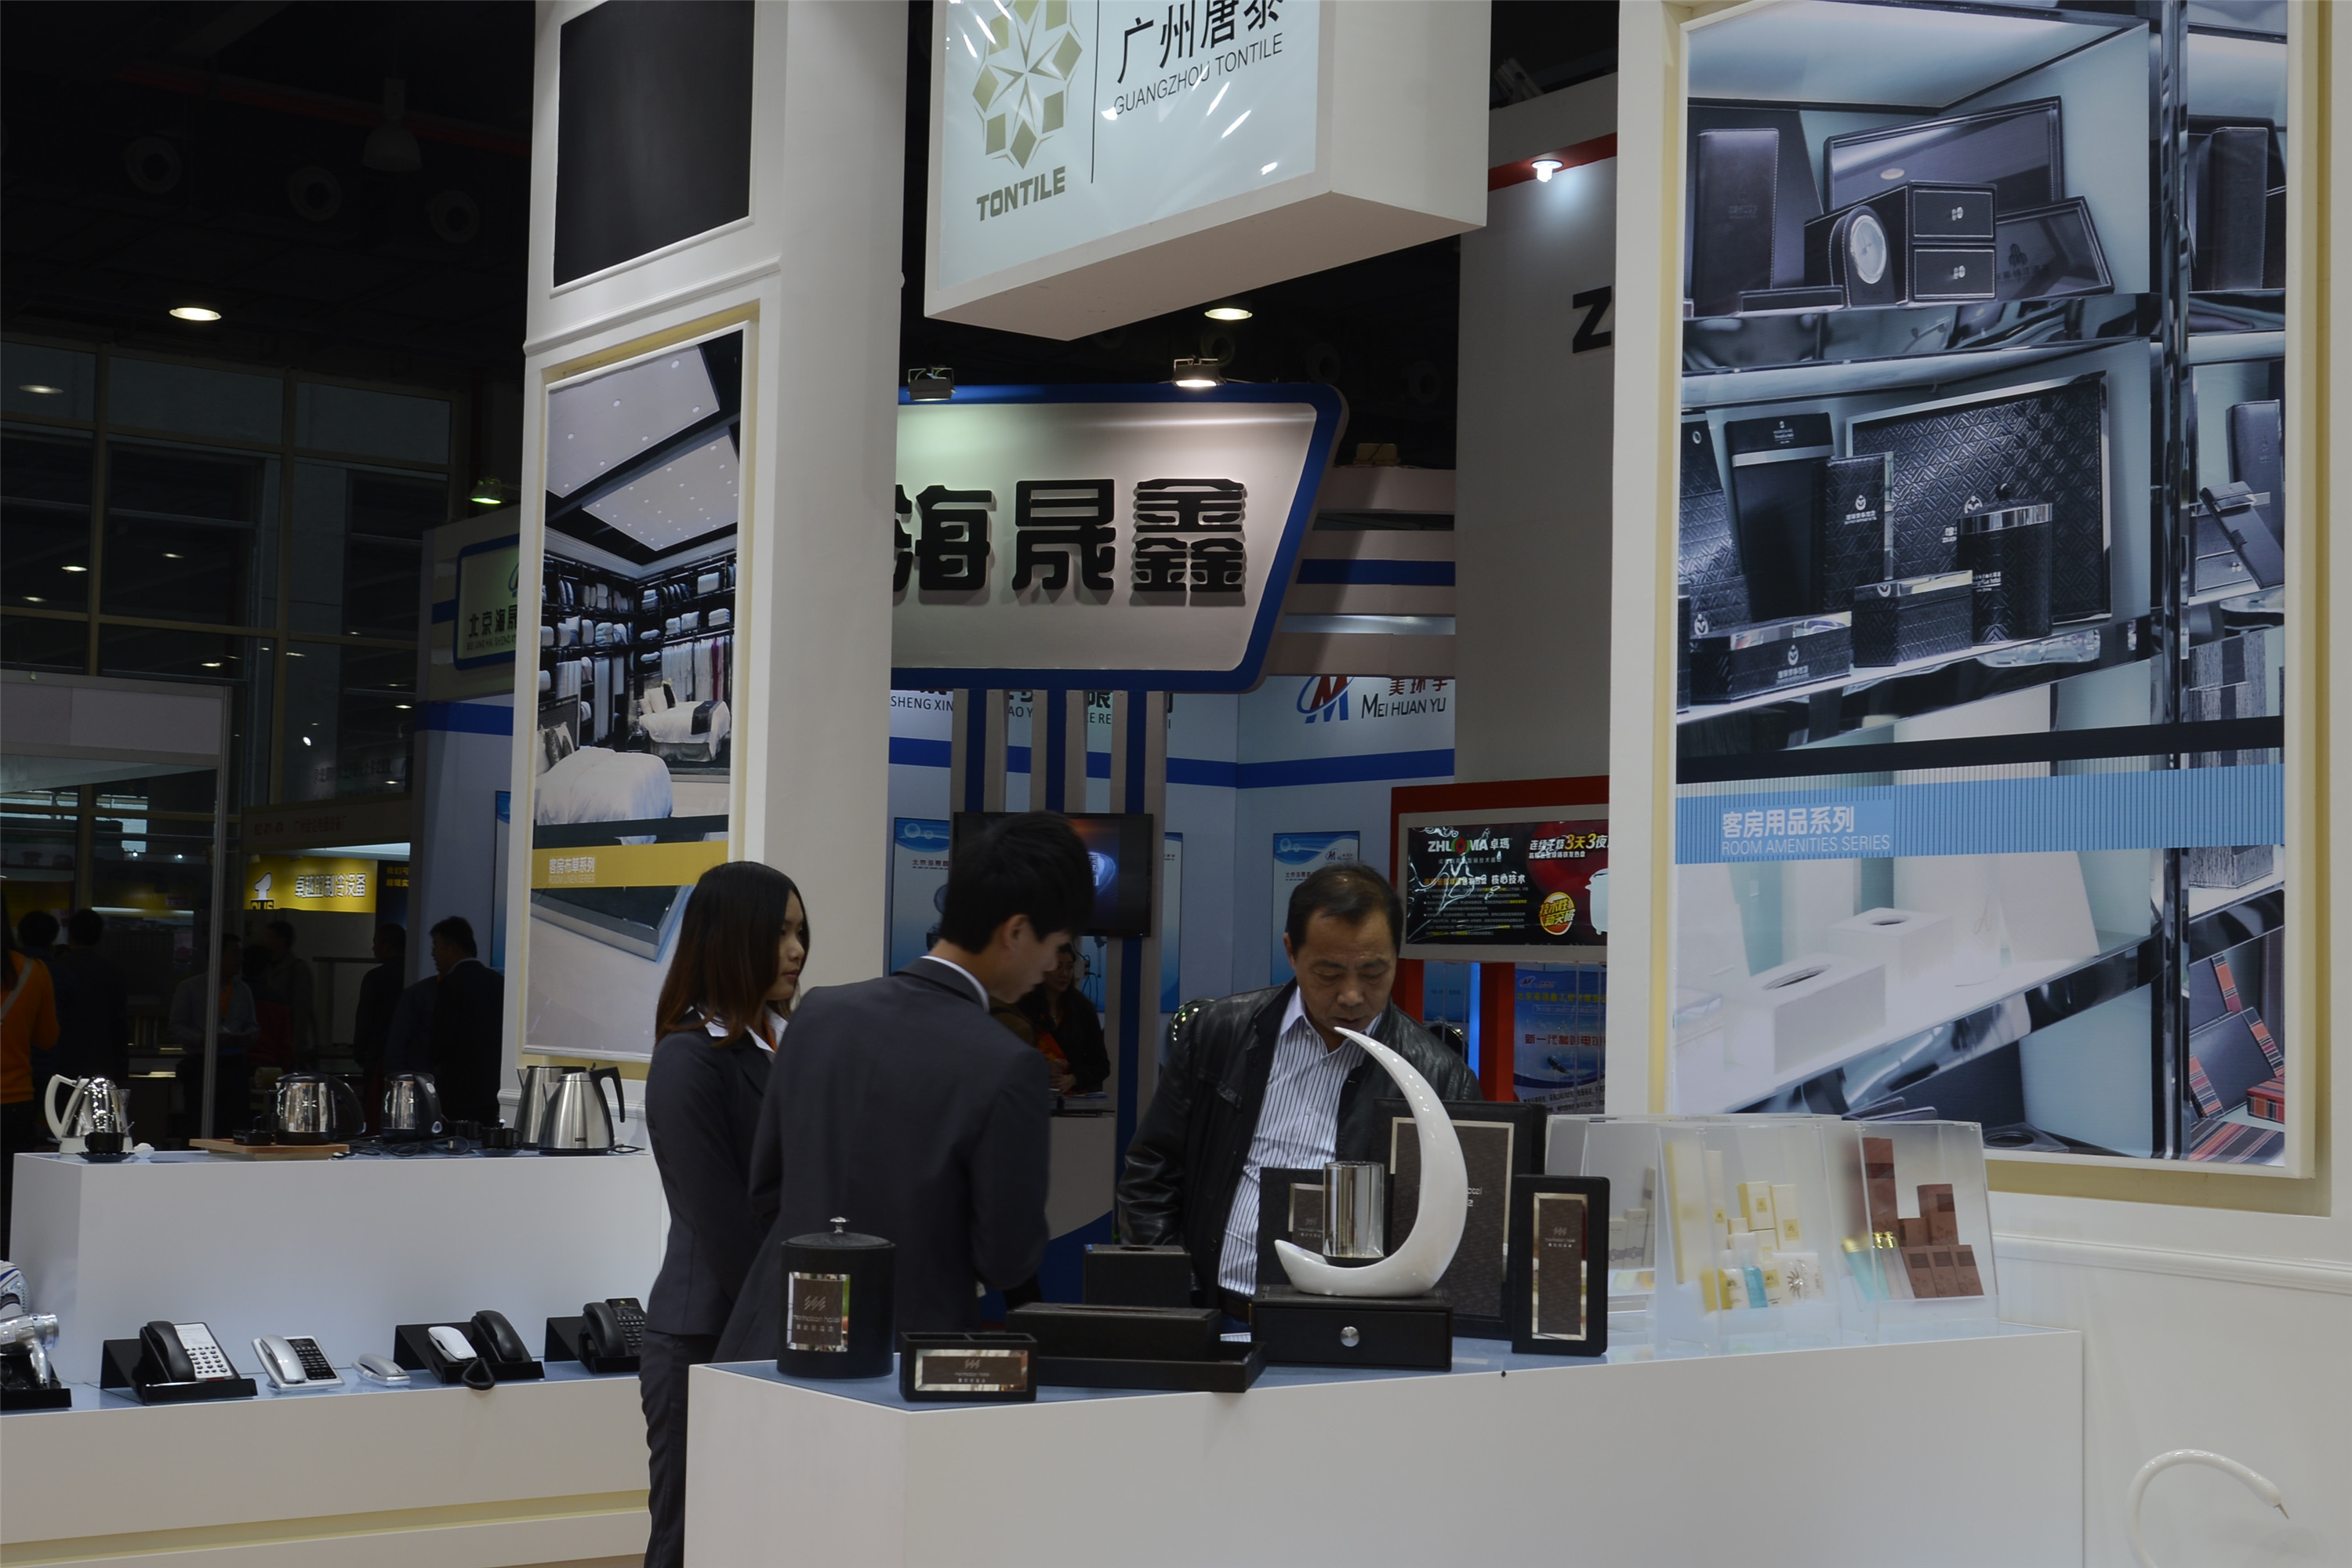 Pazhou exhibition Tontile 4